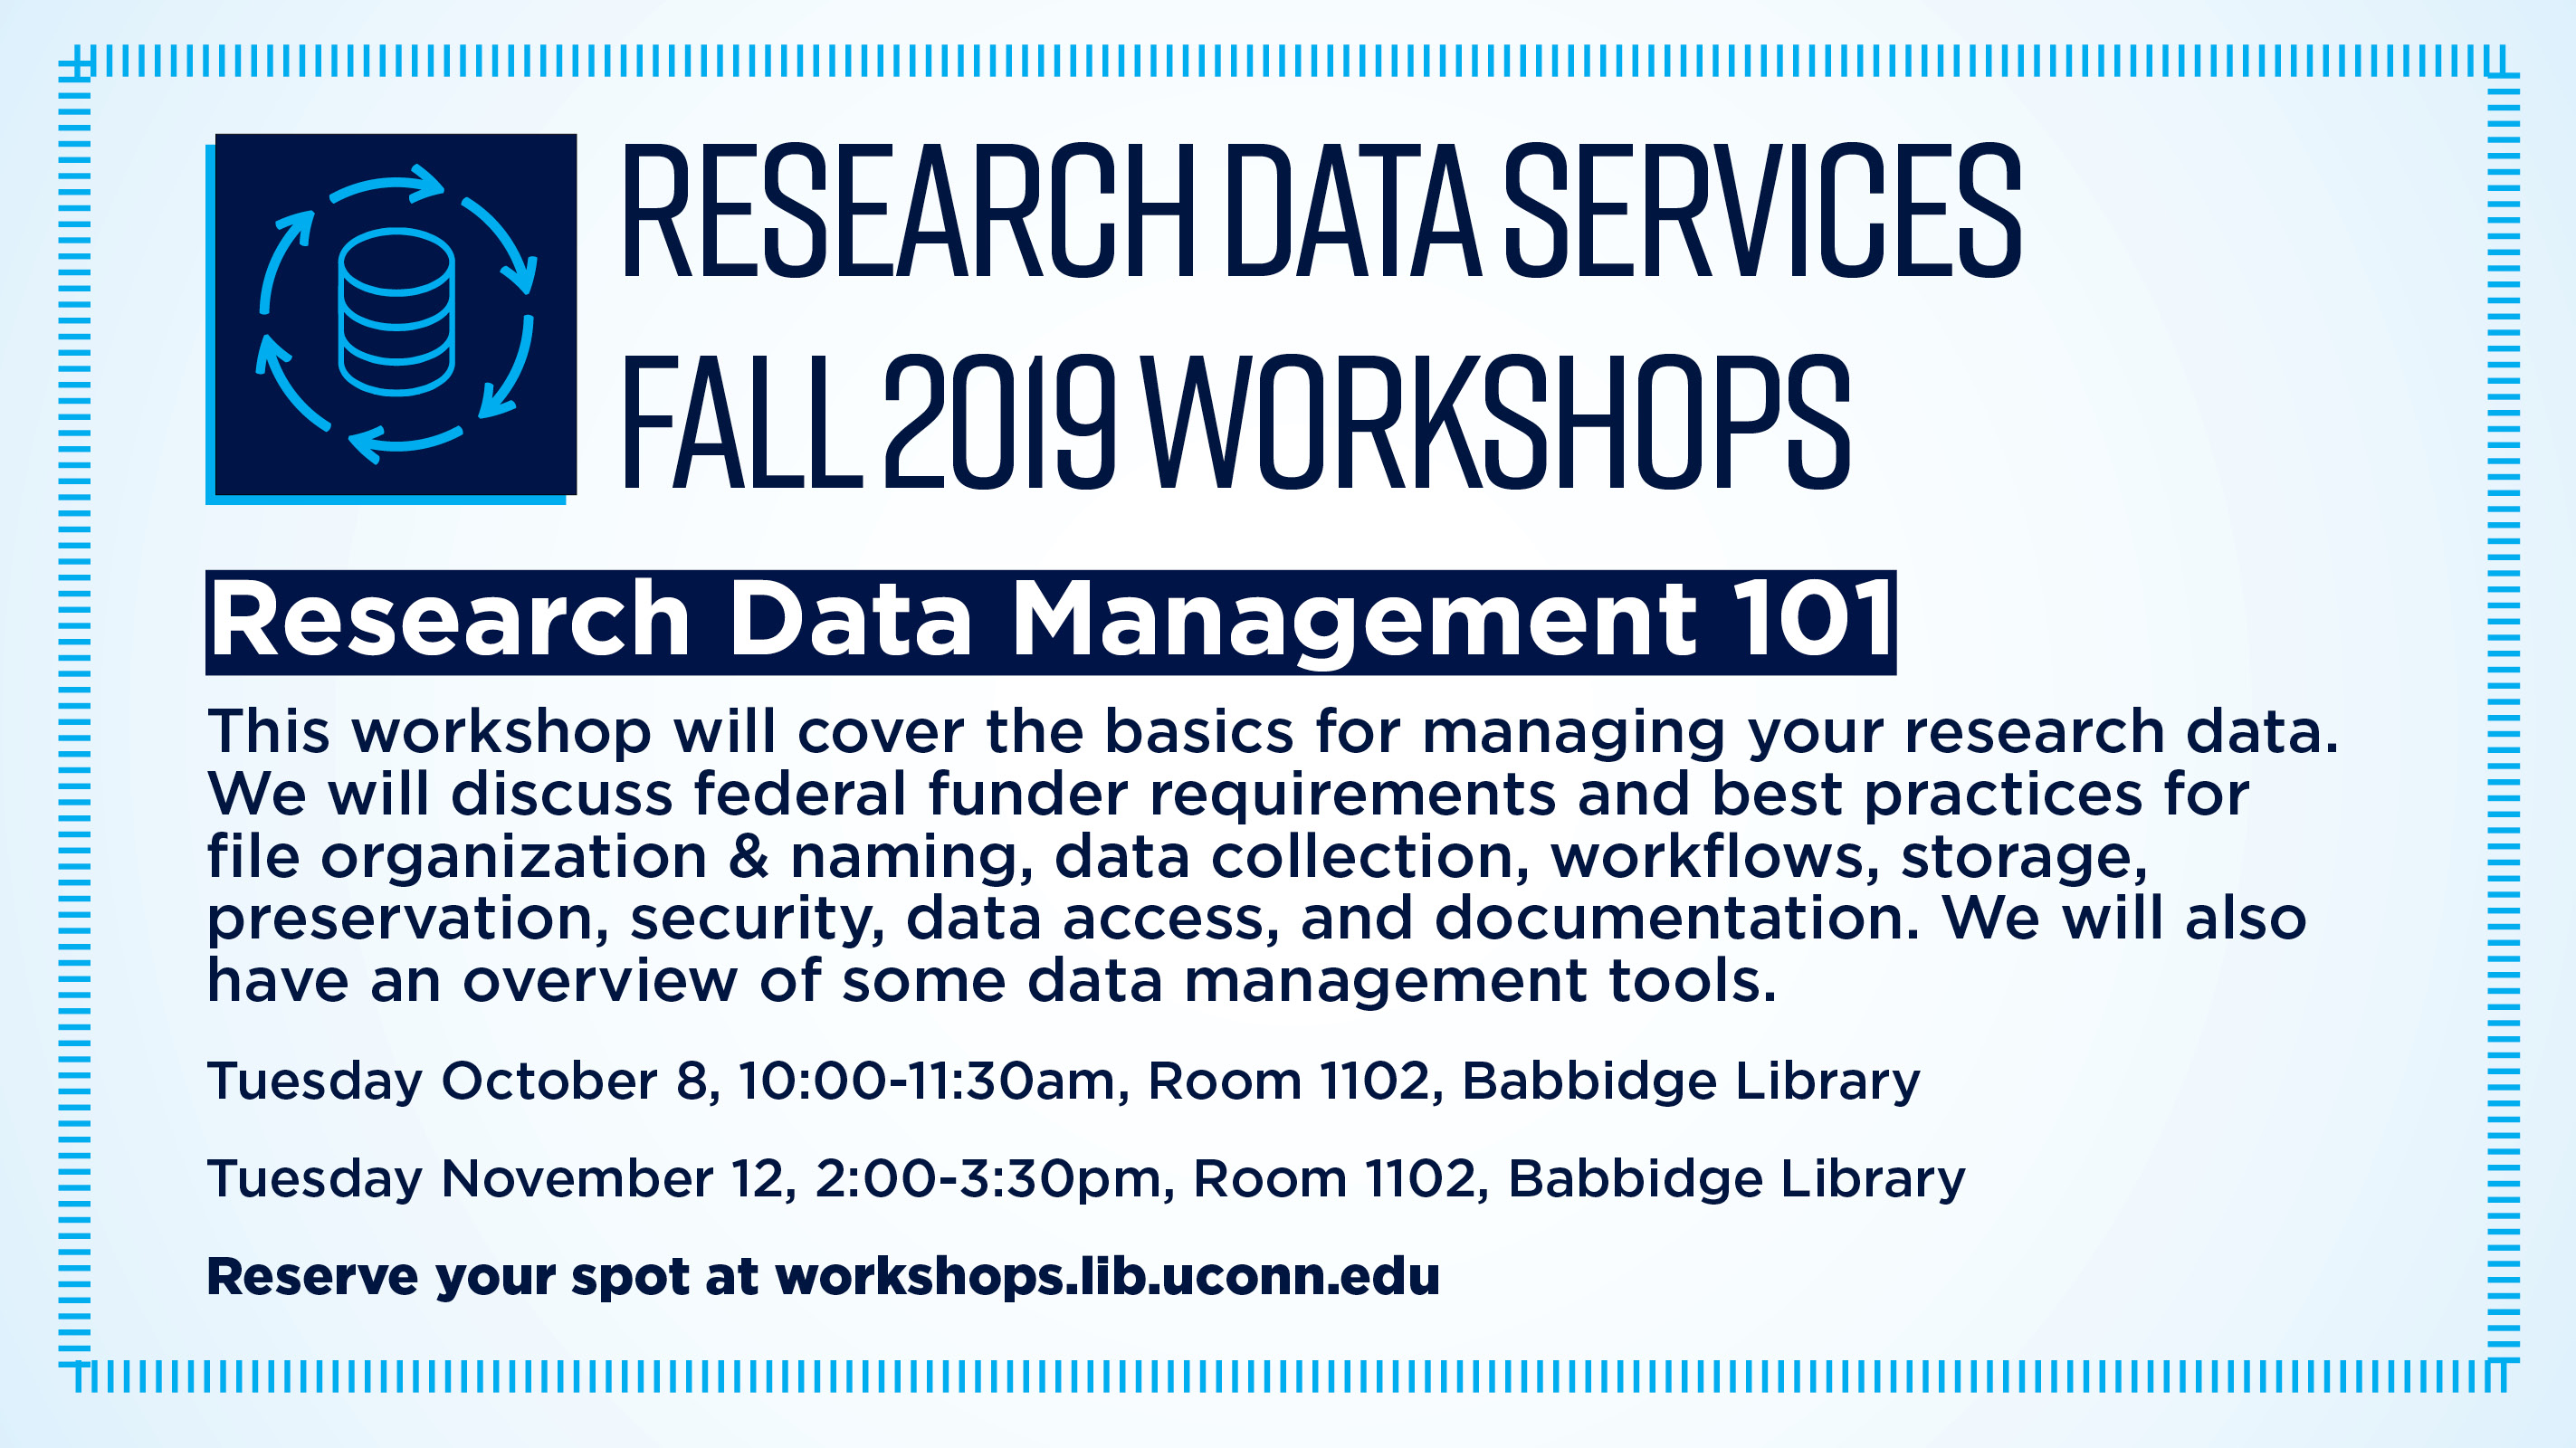 RESEARCH DATA SERVICES FALL 2019 WORKSHOPS Research Data Management 101 This workshop will cover the basics for managing your research data. We will discuss federal funder requirements and best practices for file organization & naming, data collection, workflows, storage, preservation, security, data access, and documentation. We will also have an overview of some data management tools. Tuesday October 8, 10:00-11:30am, Room 1102, Babbidge Library Tuesday November 12, 2:00-3:30pm, Room 1102, Babbidge Library Reserve your spot at workshops.lib.uconn.edu